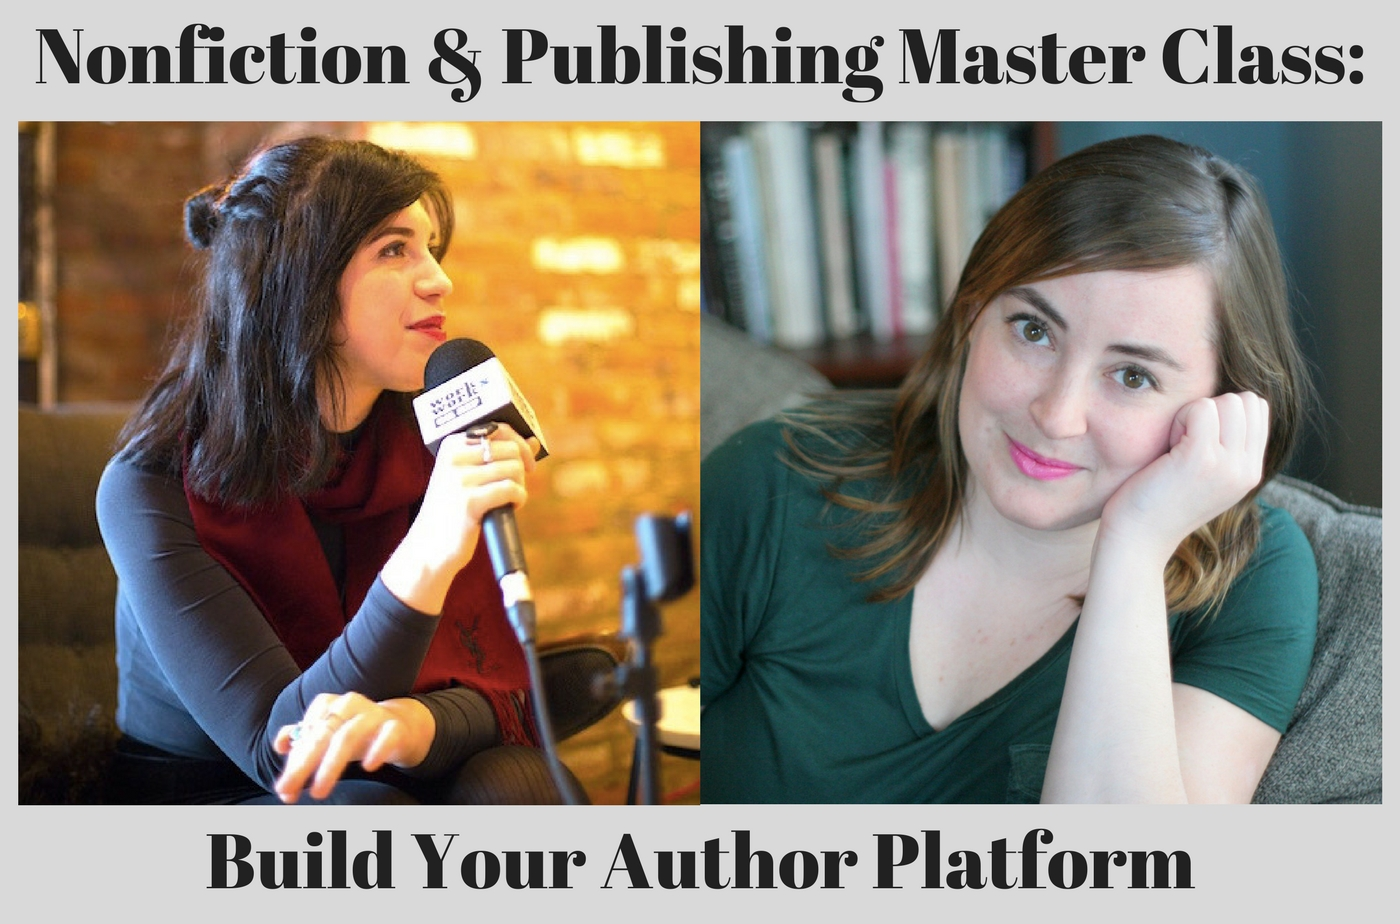 Catapult  classes: Leigh Stein, Laura Feinstein, 2-Day Nonfiction & Publishing Master Class: Build Your Author Platform, Nonfiction, Master Class